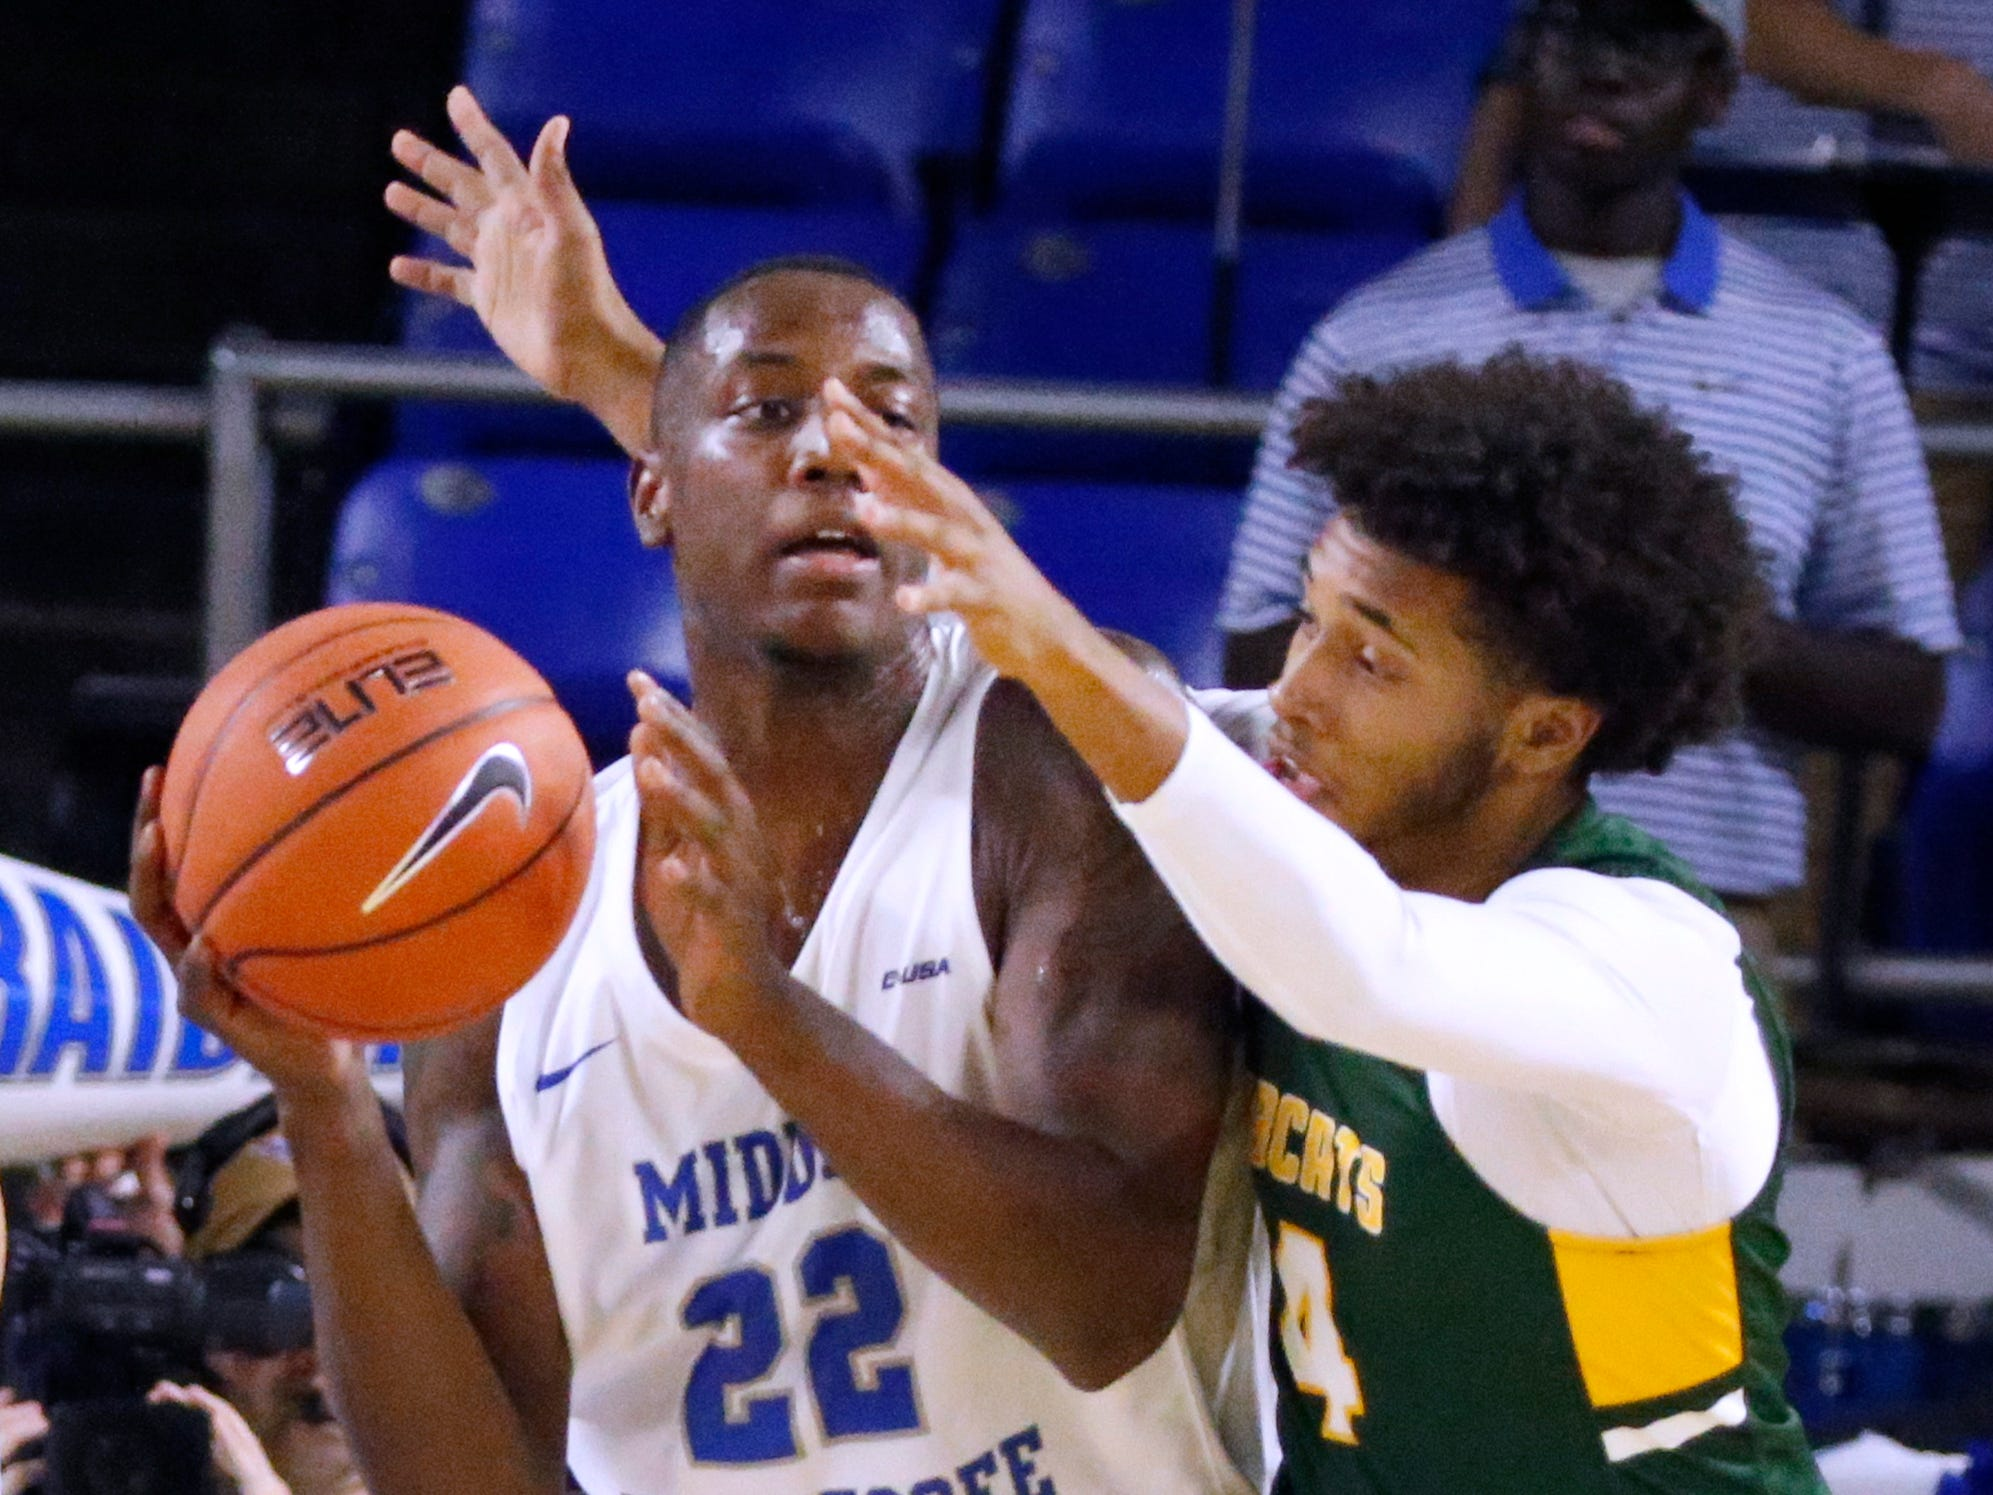 MTSU's Reggie Scurry (22) go to pass the ball as Lees-McRae's Malik Wright (14) guards him on Tuesday, Nov. 6, 2018.